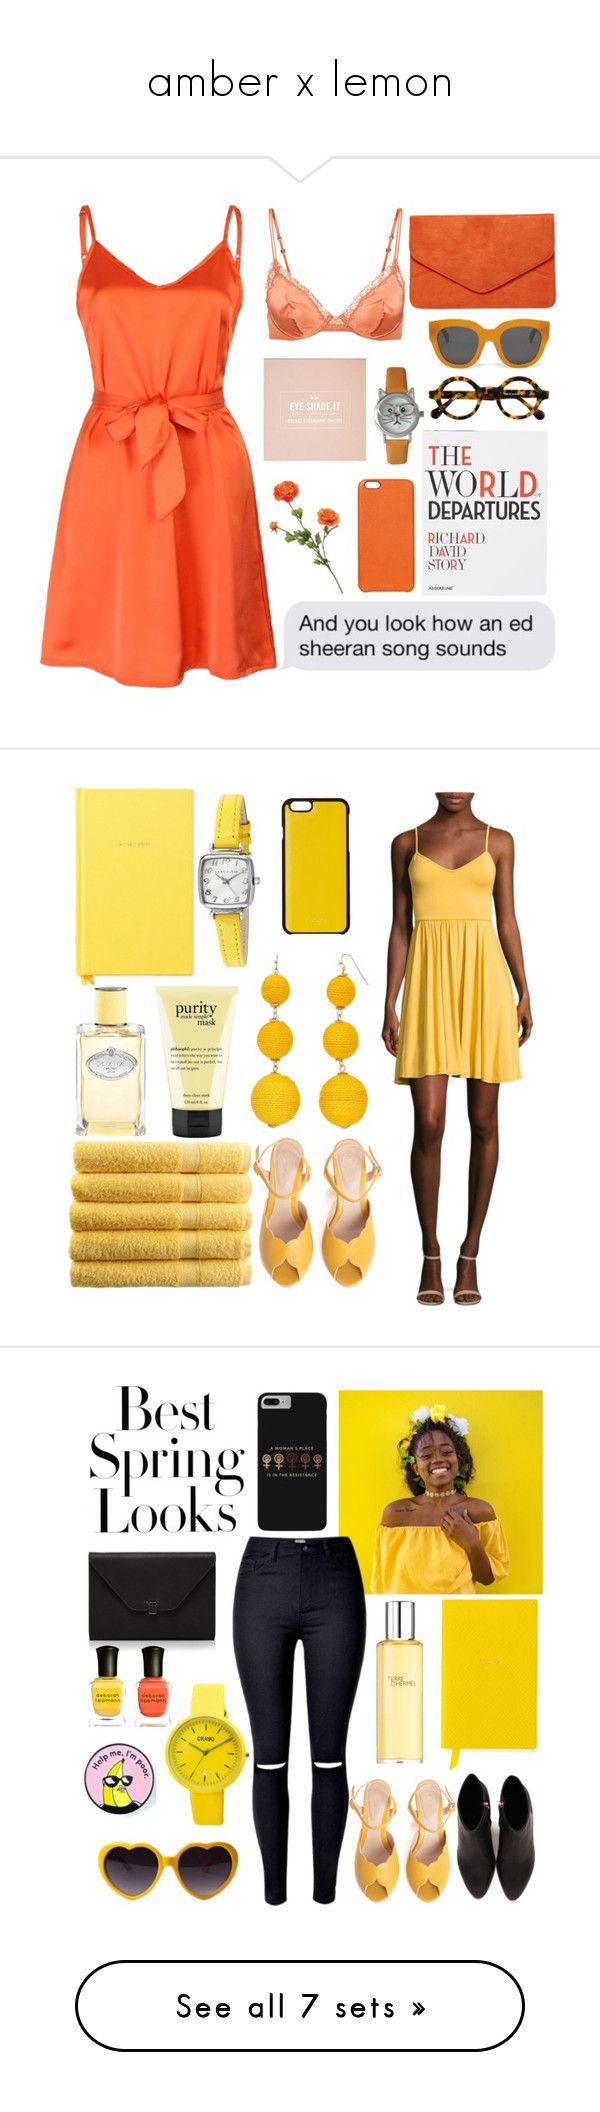 """""""amber x lemon"""" by kateknowles1 ❤ liked on Polyvore featuring WithChic, Assouline Publishing, Dorothy Perkins, Chaos, Olivia Pratt, Kate Spade, Prada, philosophy, Anne Klein and SPECIAL DAY"""